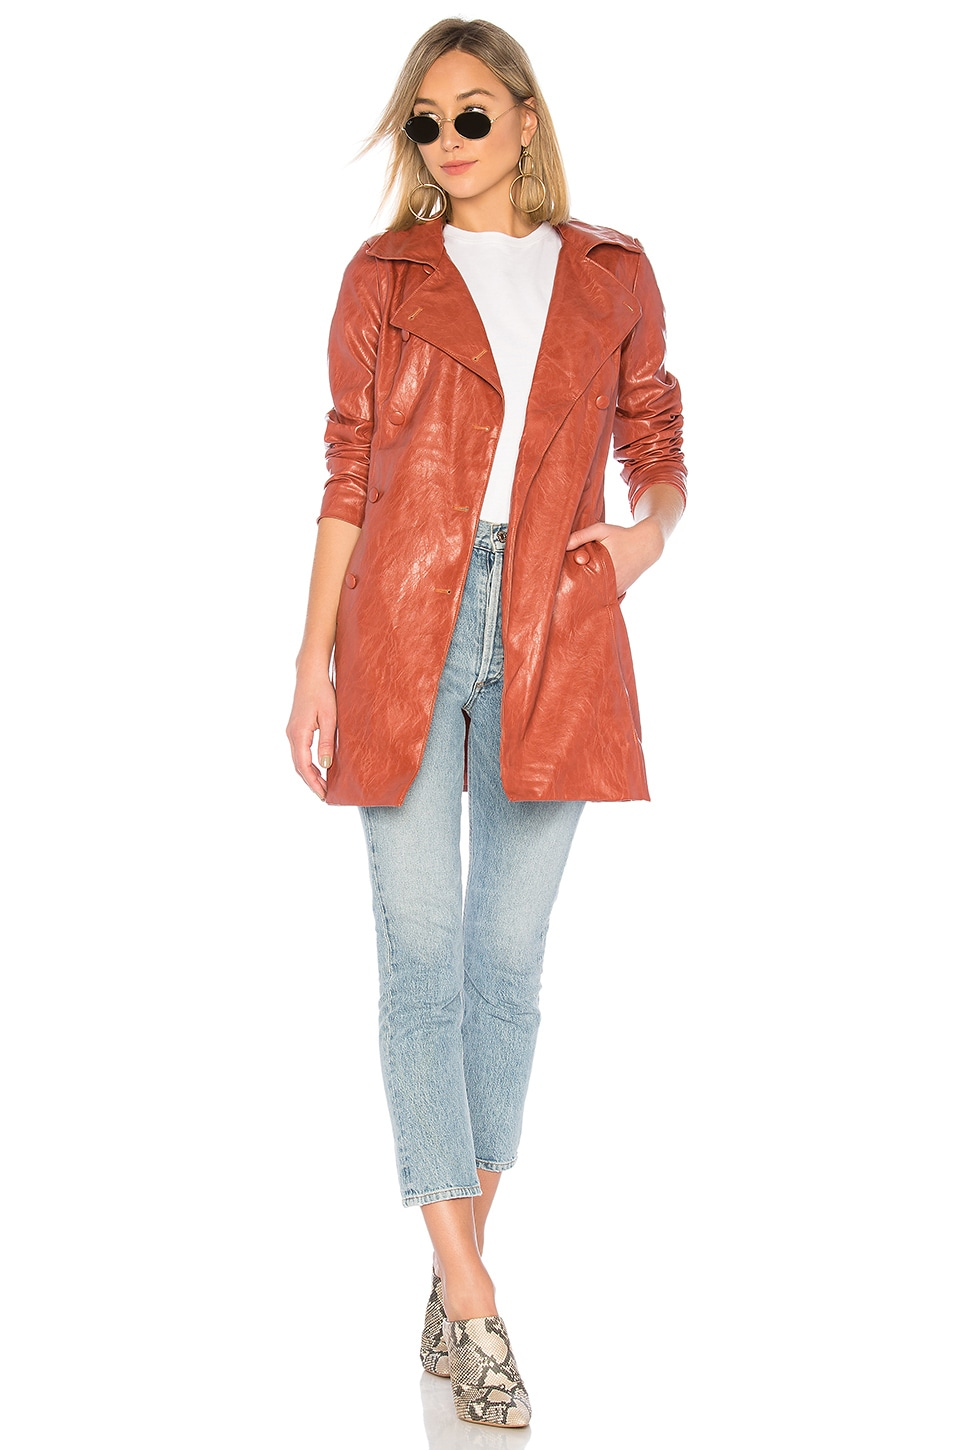 MAJORELLE Melinda Coat in Terracotta Brown